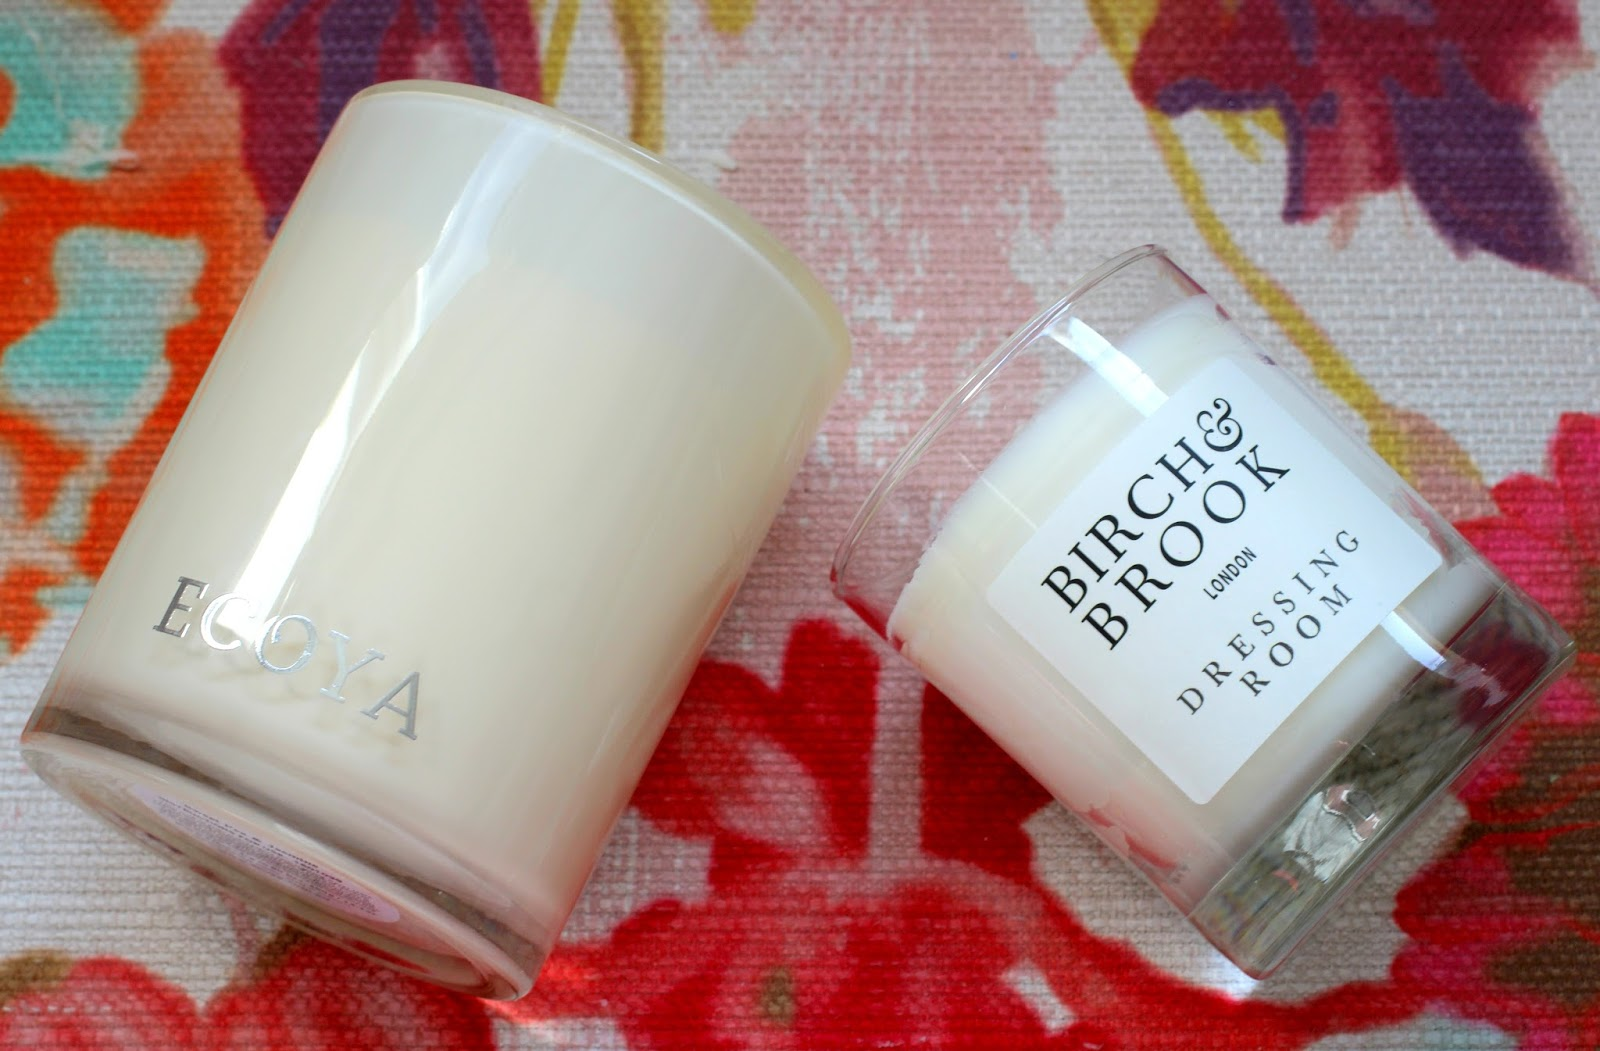 Ecoya candle review